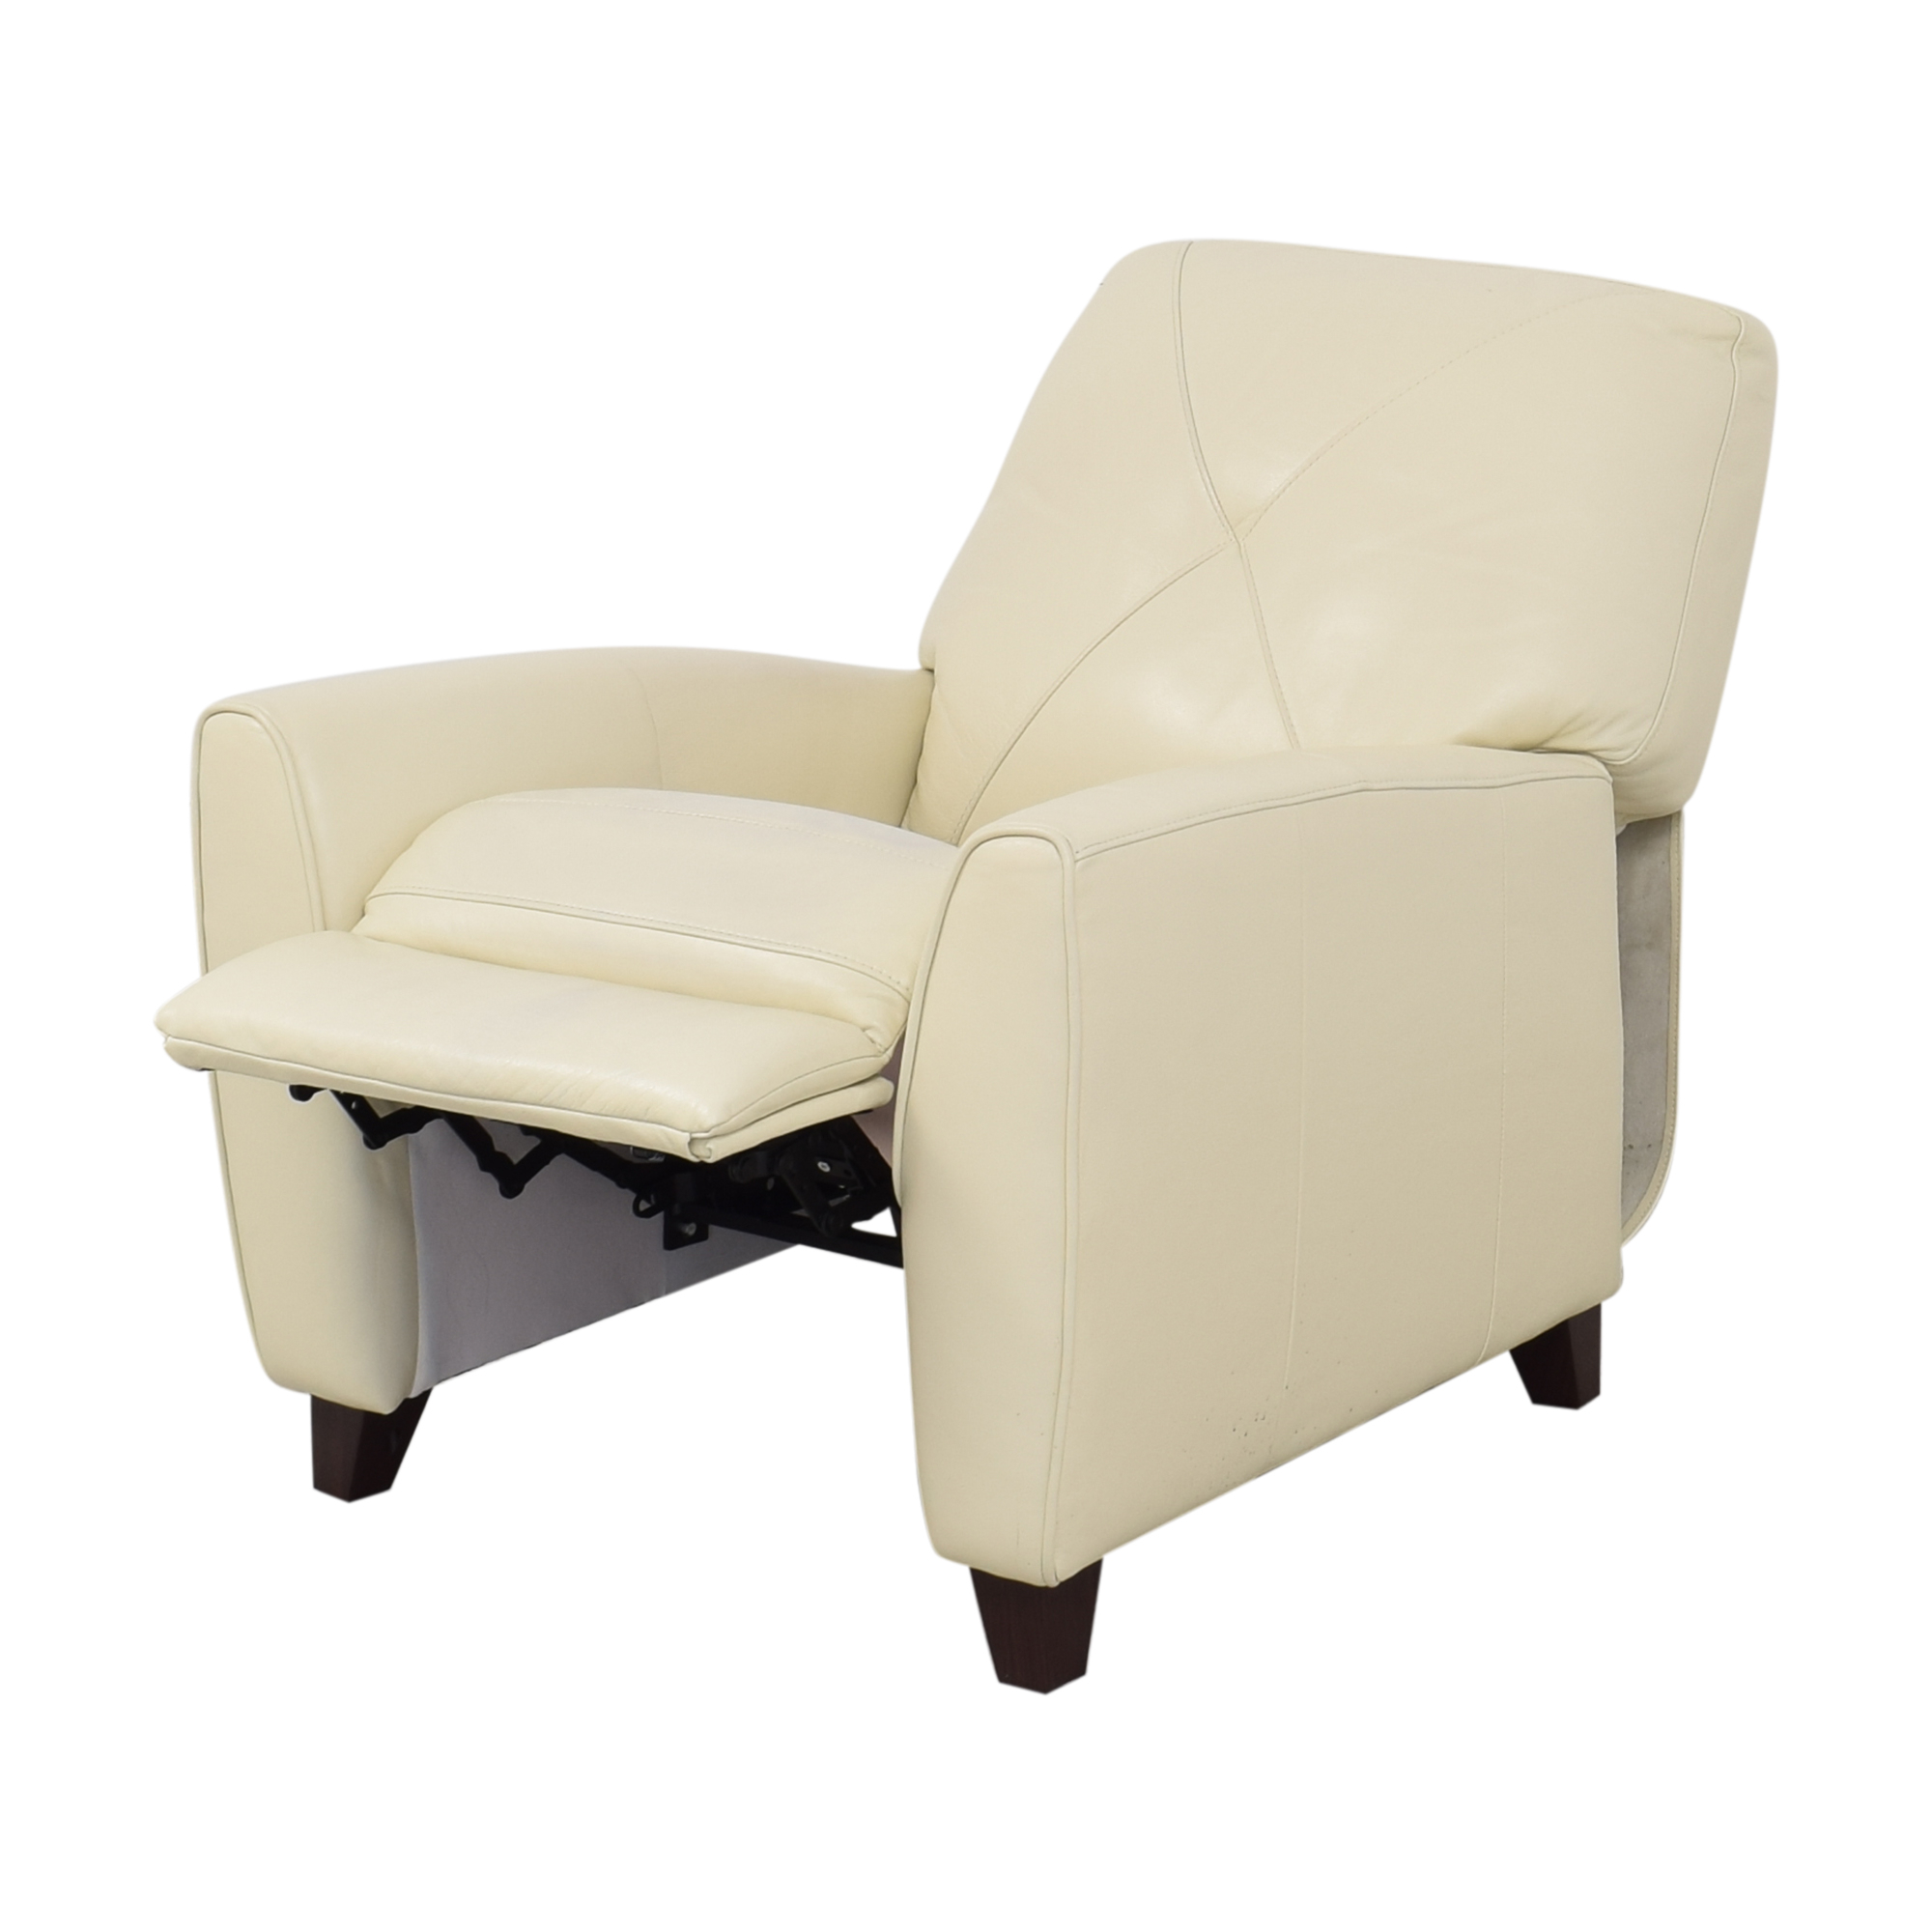 [%84% Off – Macy's Macy's Myia Pushback Reclining Chair / Chairs Pertaining To Latest Myia Armchairs|myia Armchairs Throughout Best And Newest 84% Off – Macy's Macy's Myia Pushback Reclining Chair / Chairs|current Myia Armchairs With 84% Off – Macy's Macy's Myia Pushback Reclining Chair / Chairs|recent 84% Off – Macy's Macy's Myia Pushback Reclining Chair / Chairs Intended For Myia Armchairs%] (View 9 of 20)